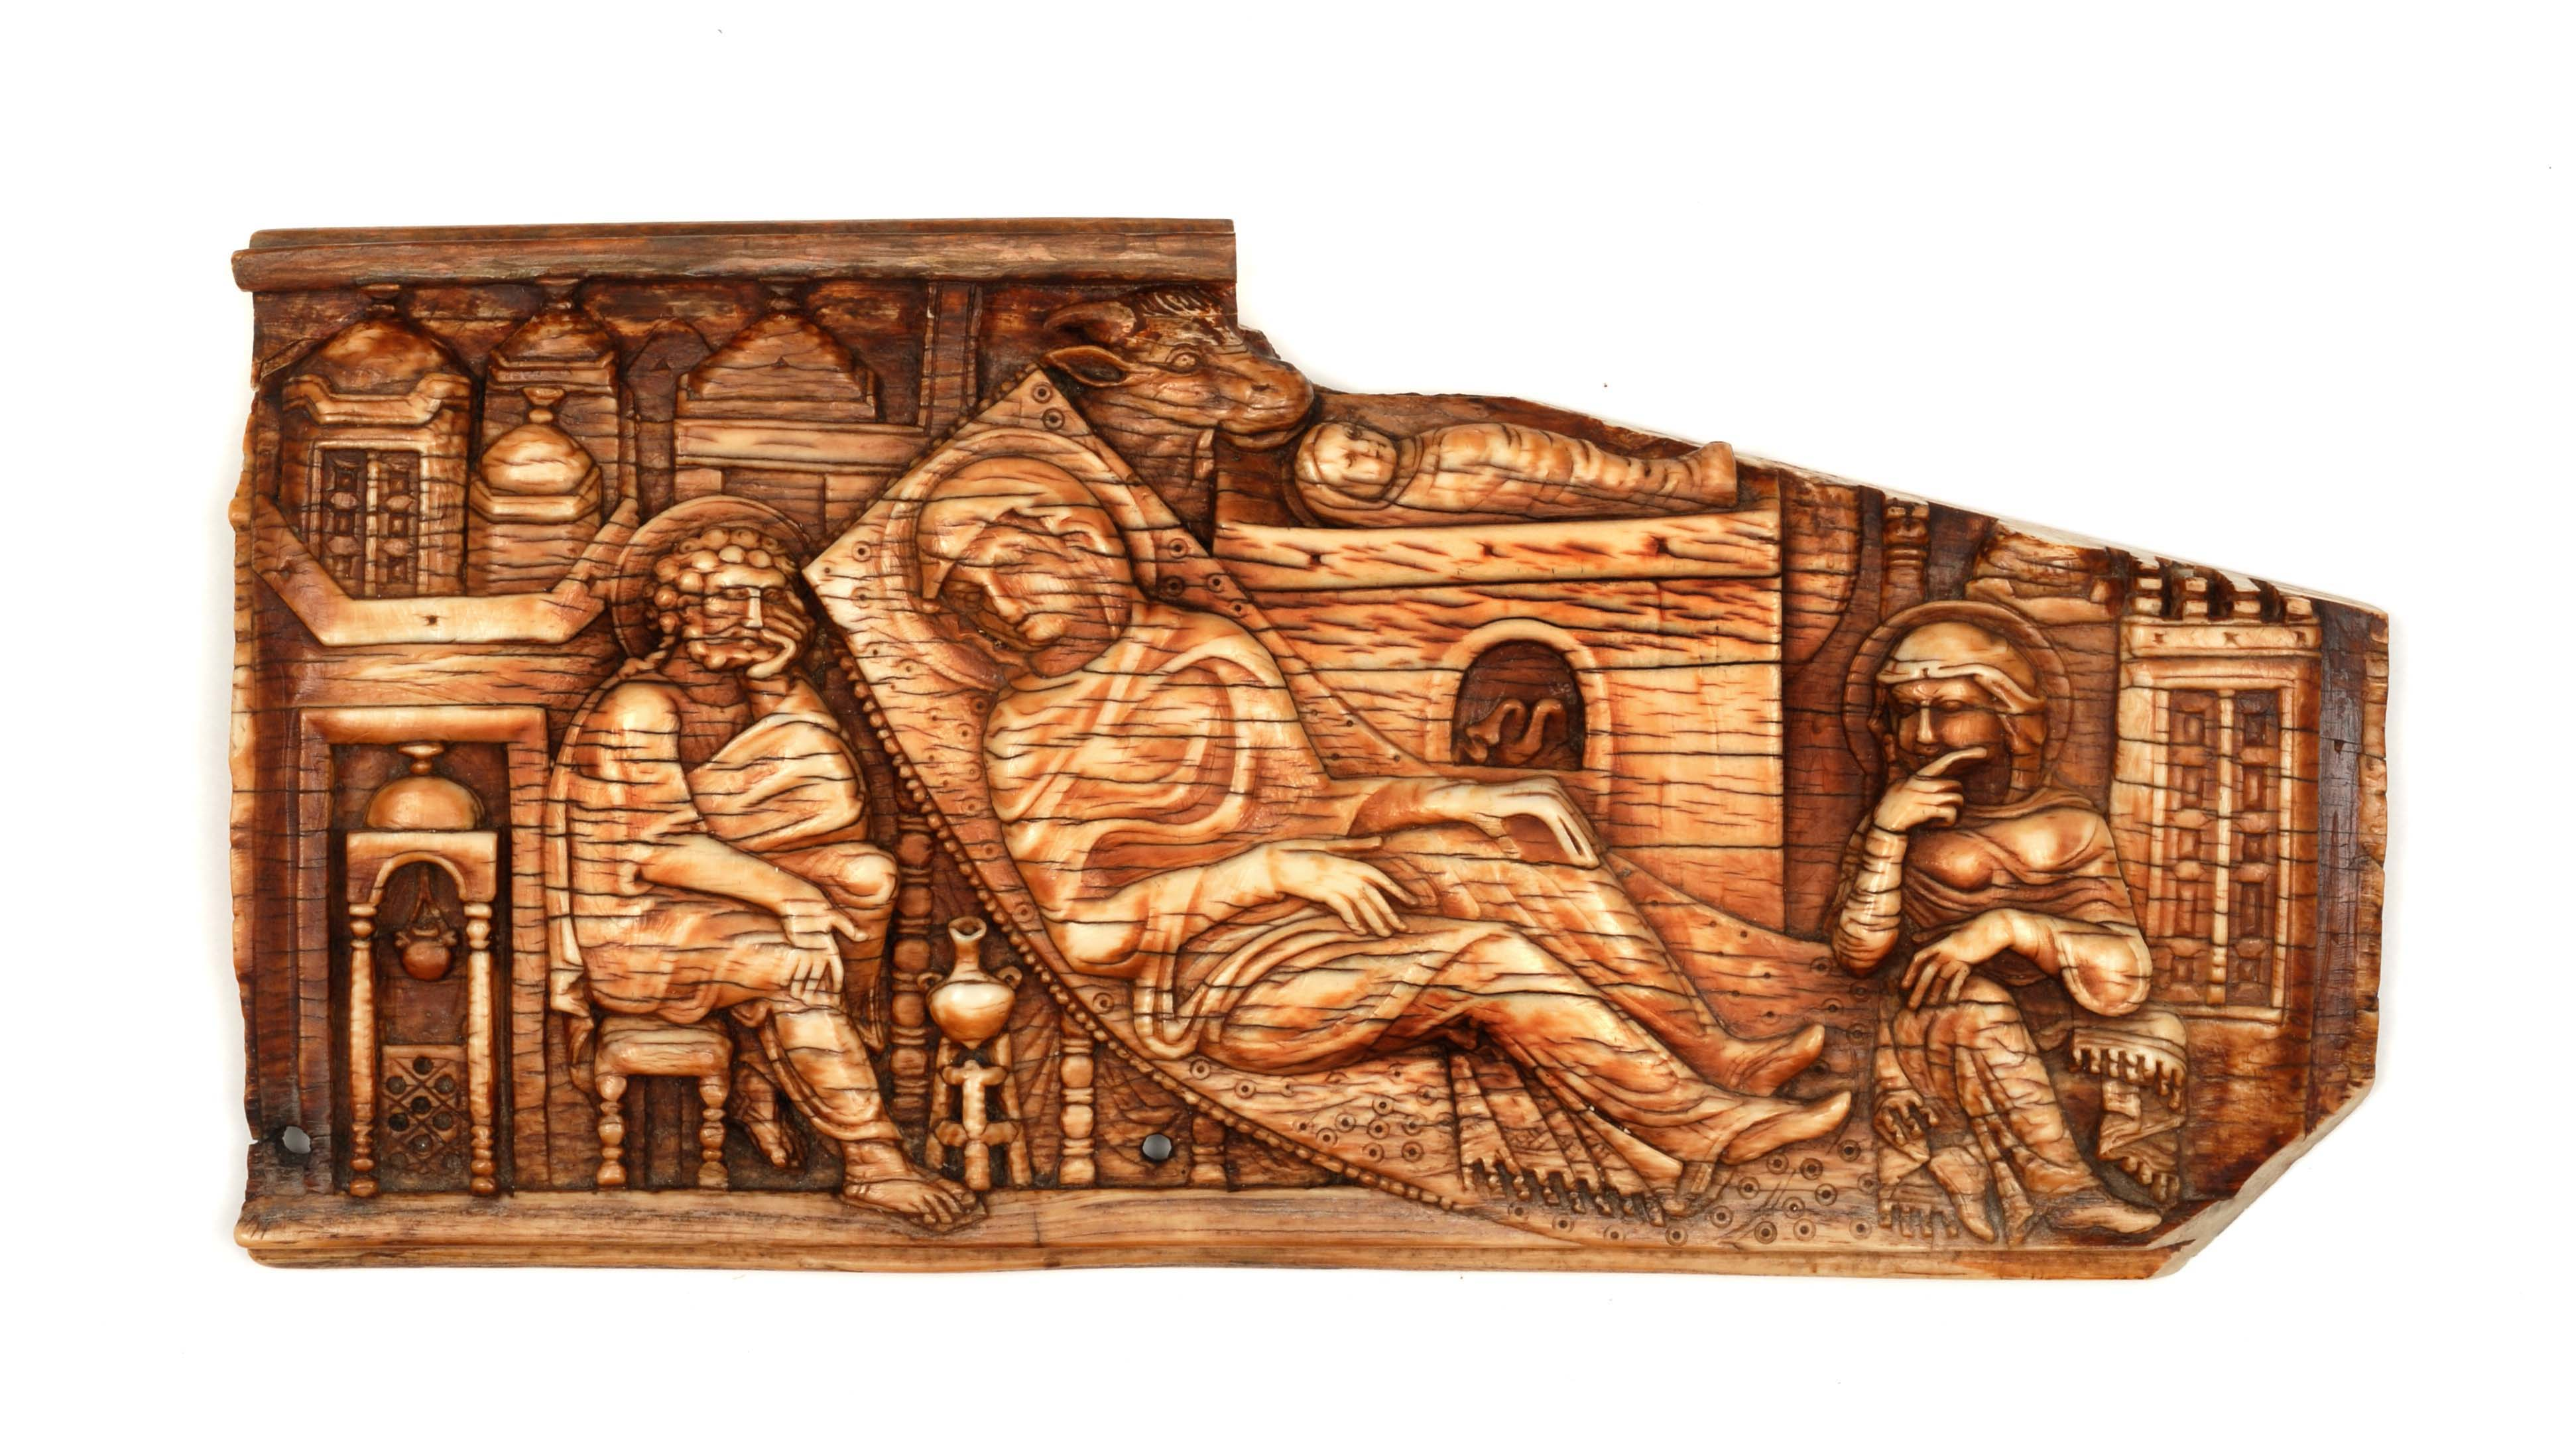 BZ.1951.30, Plaque with Nativity